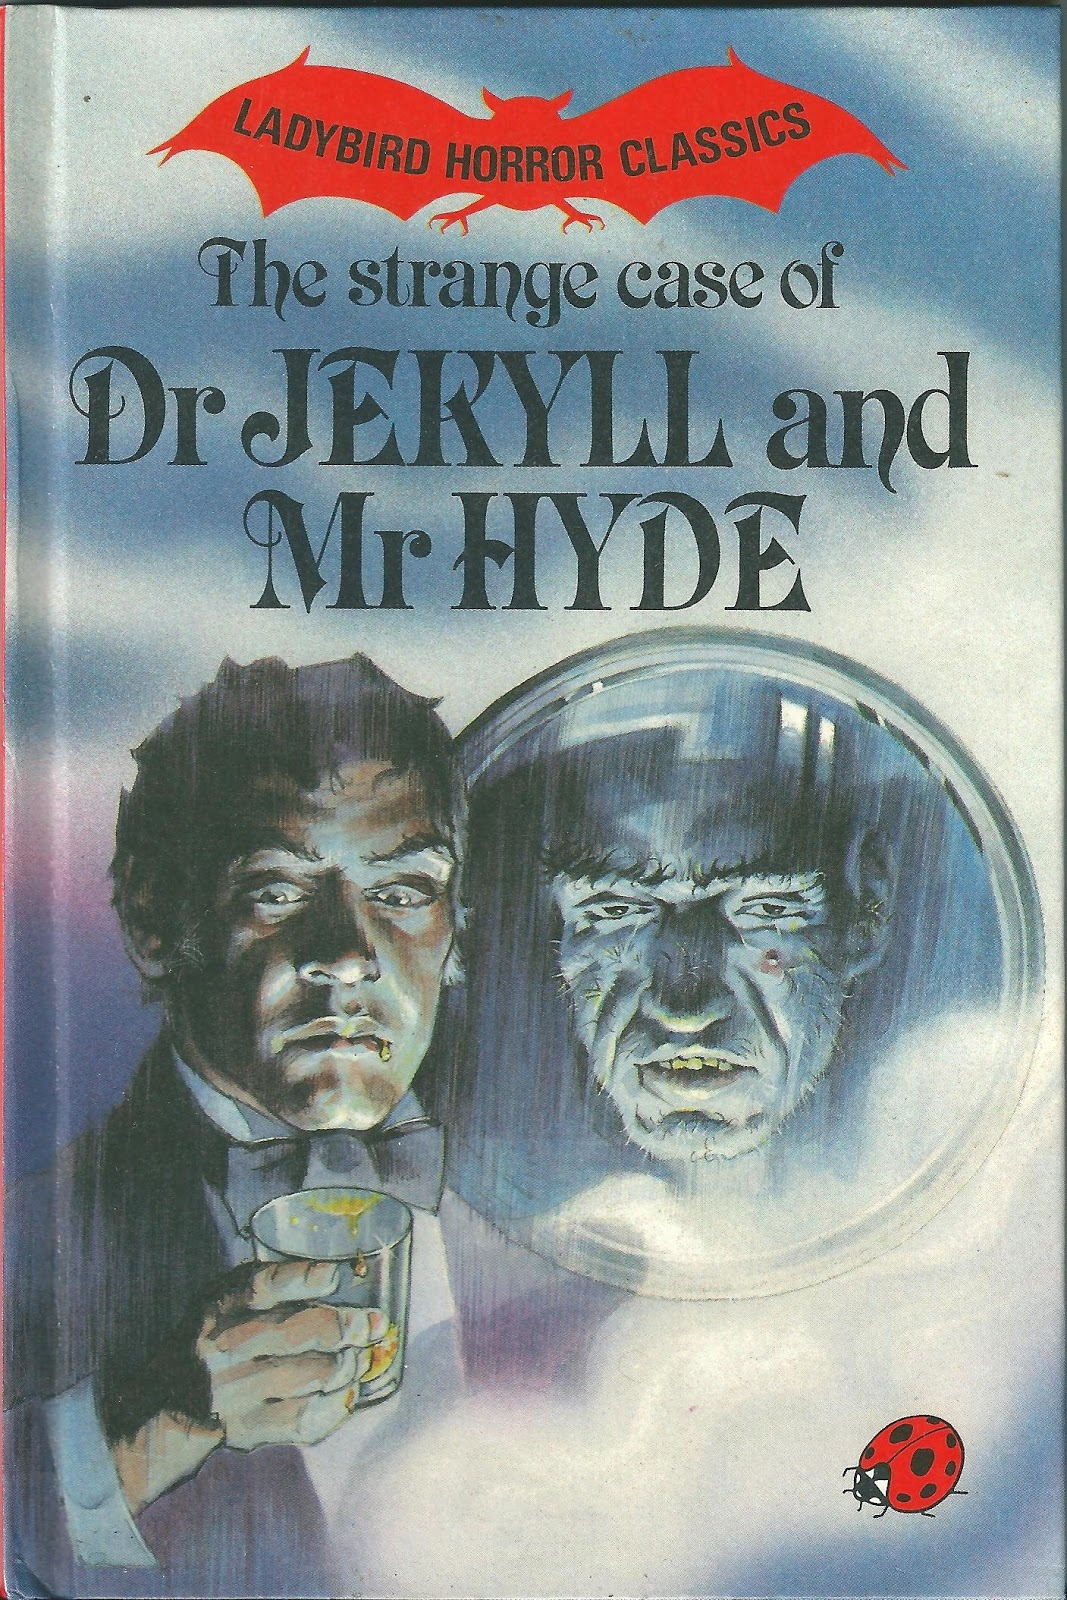 compare dr jekyll mr hyde essay  the strange case of dr jekyll and mr hyde and mary reilly lenka říhová mup, 4as_k january 2014 word count: 1856 valerie martin, an american.